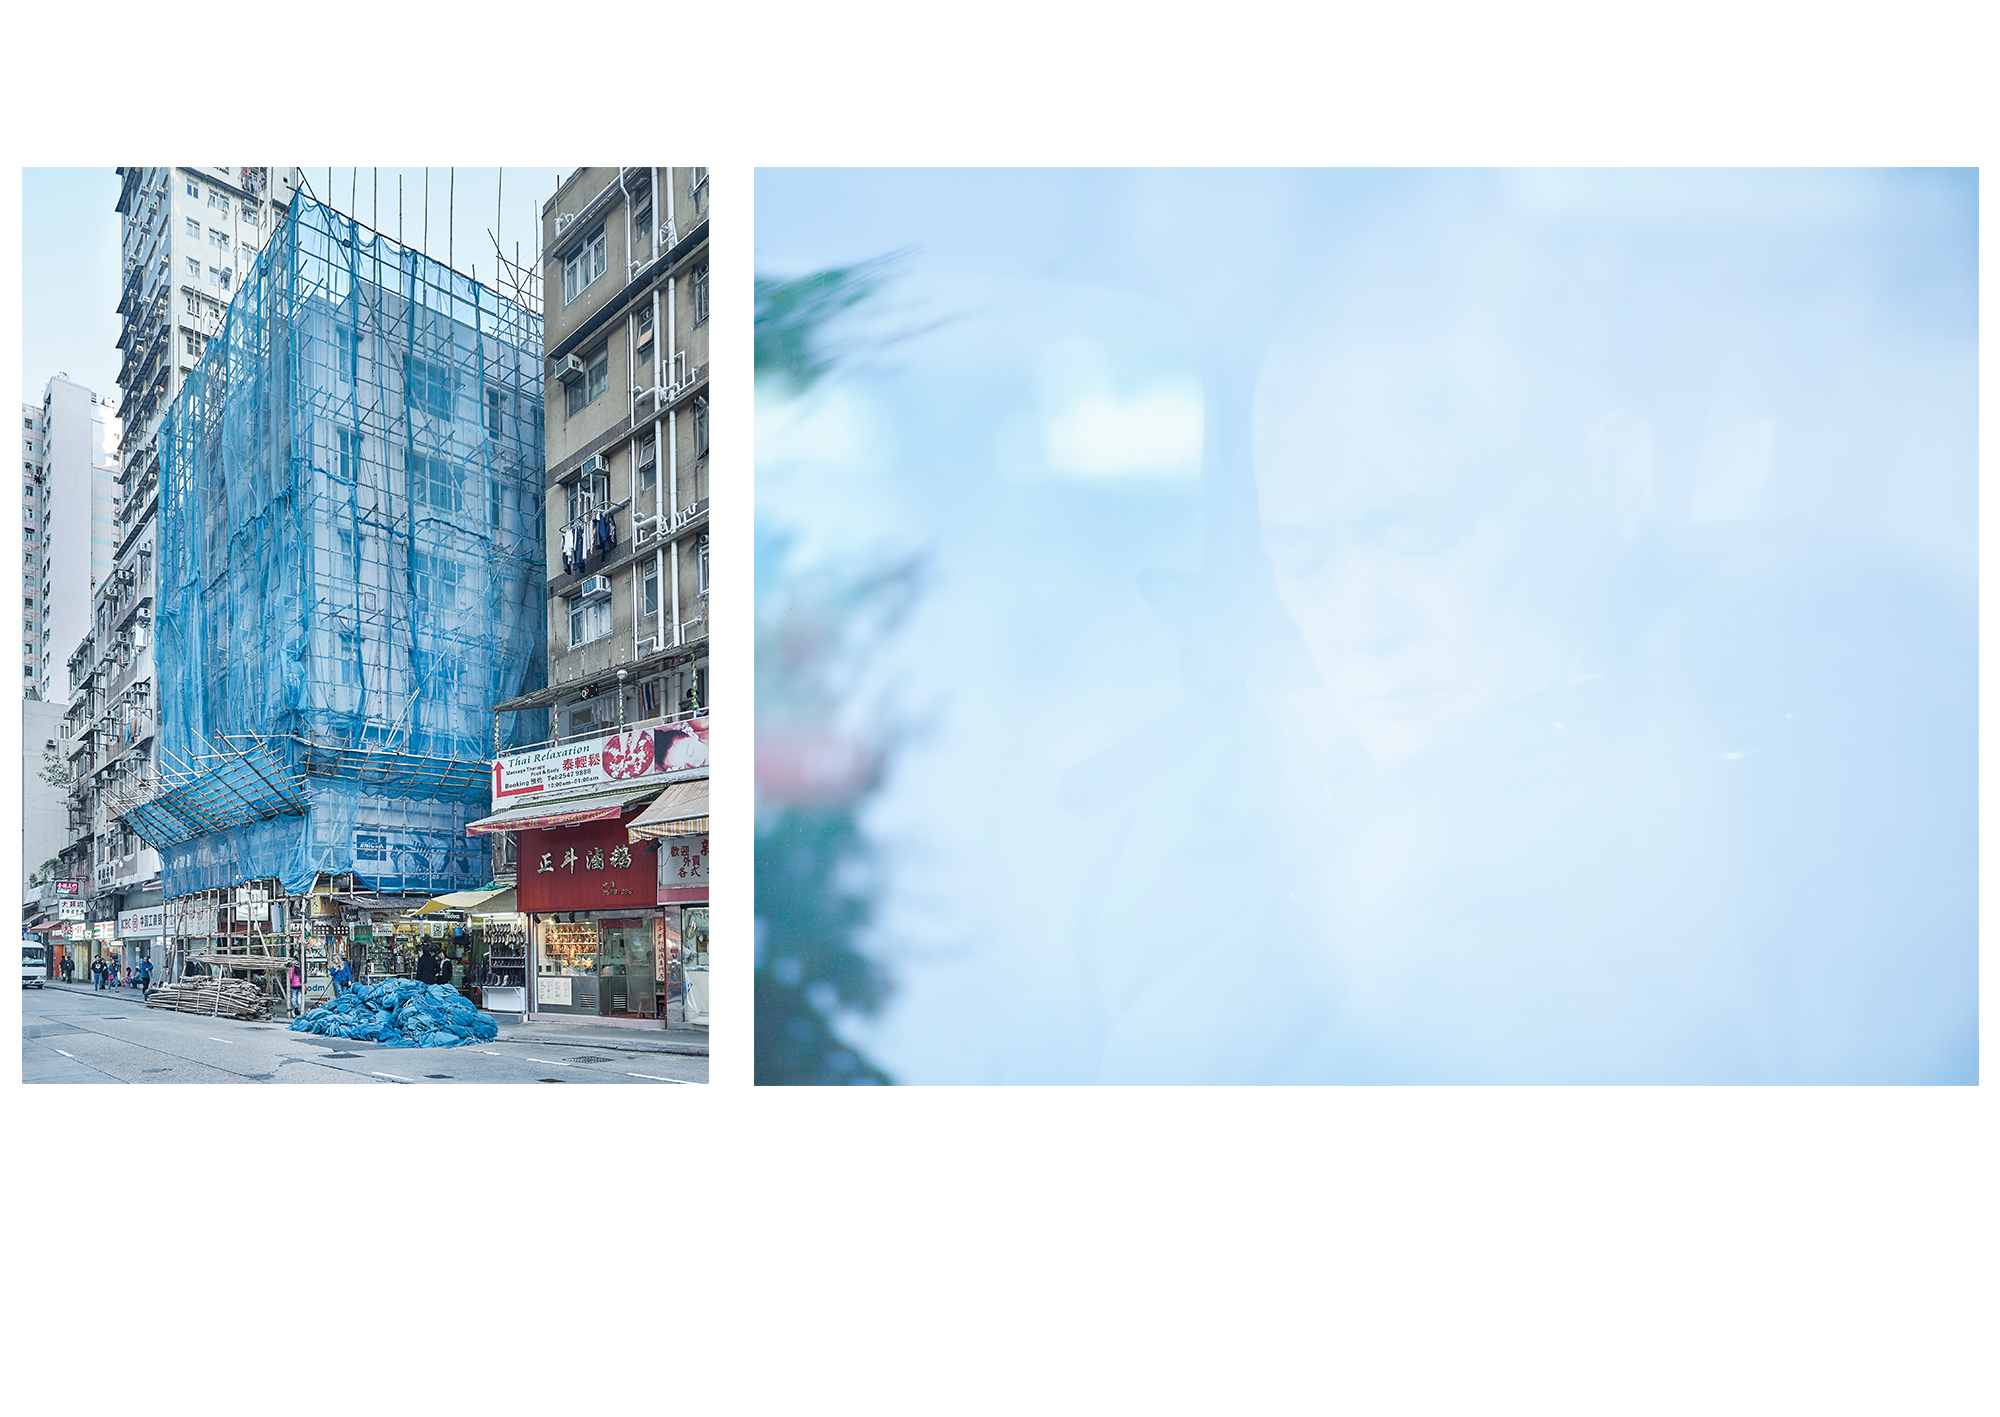 Hong Kong Stillness 1 + 2, 2015, Epson Photo Matt on dibond, oak frame, 45cmx60cm and 80cmx60cm, edition 1/7 + 1 AP